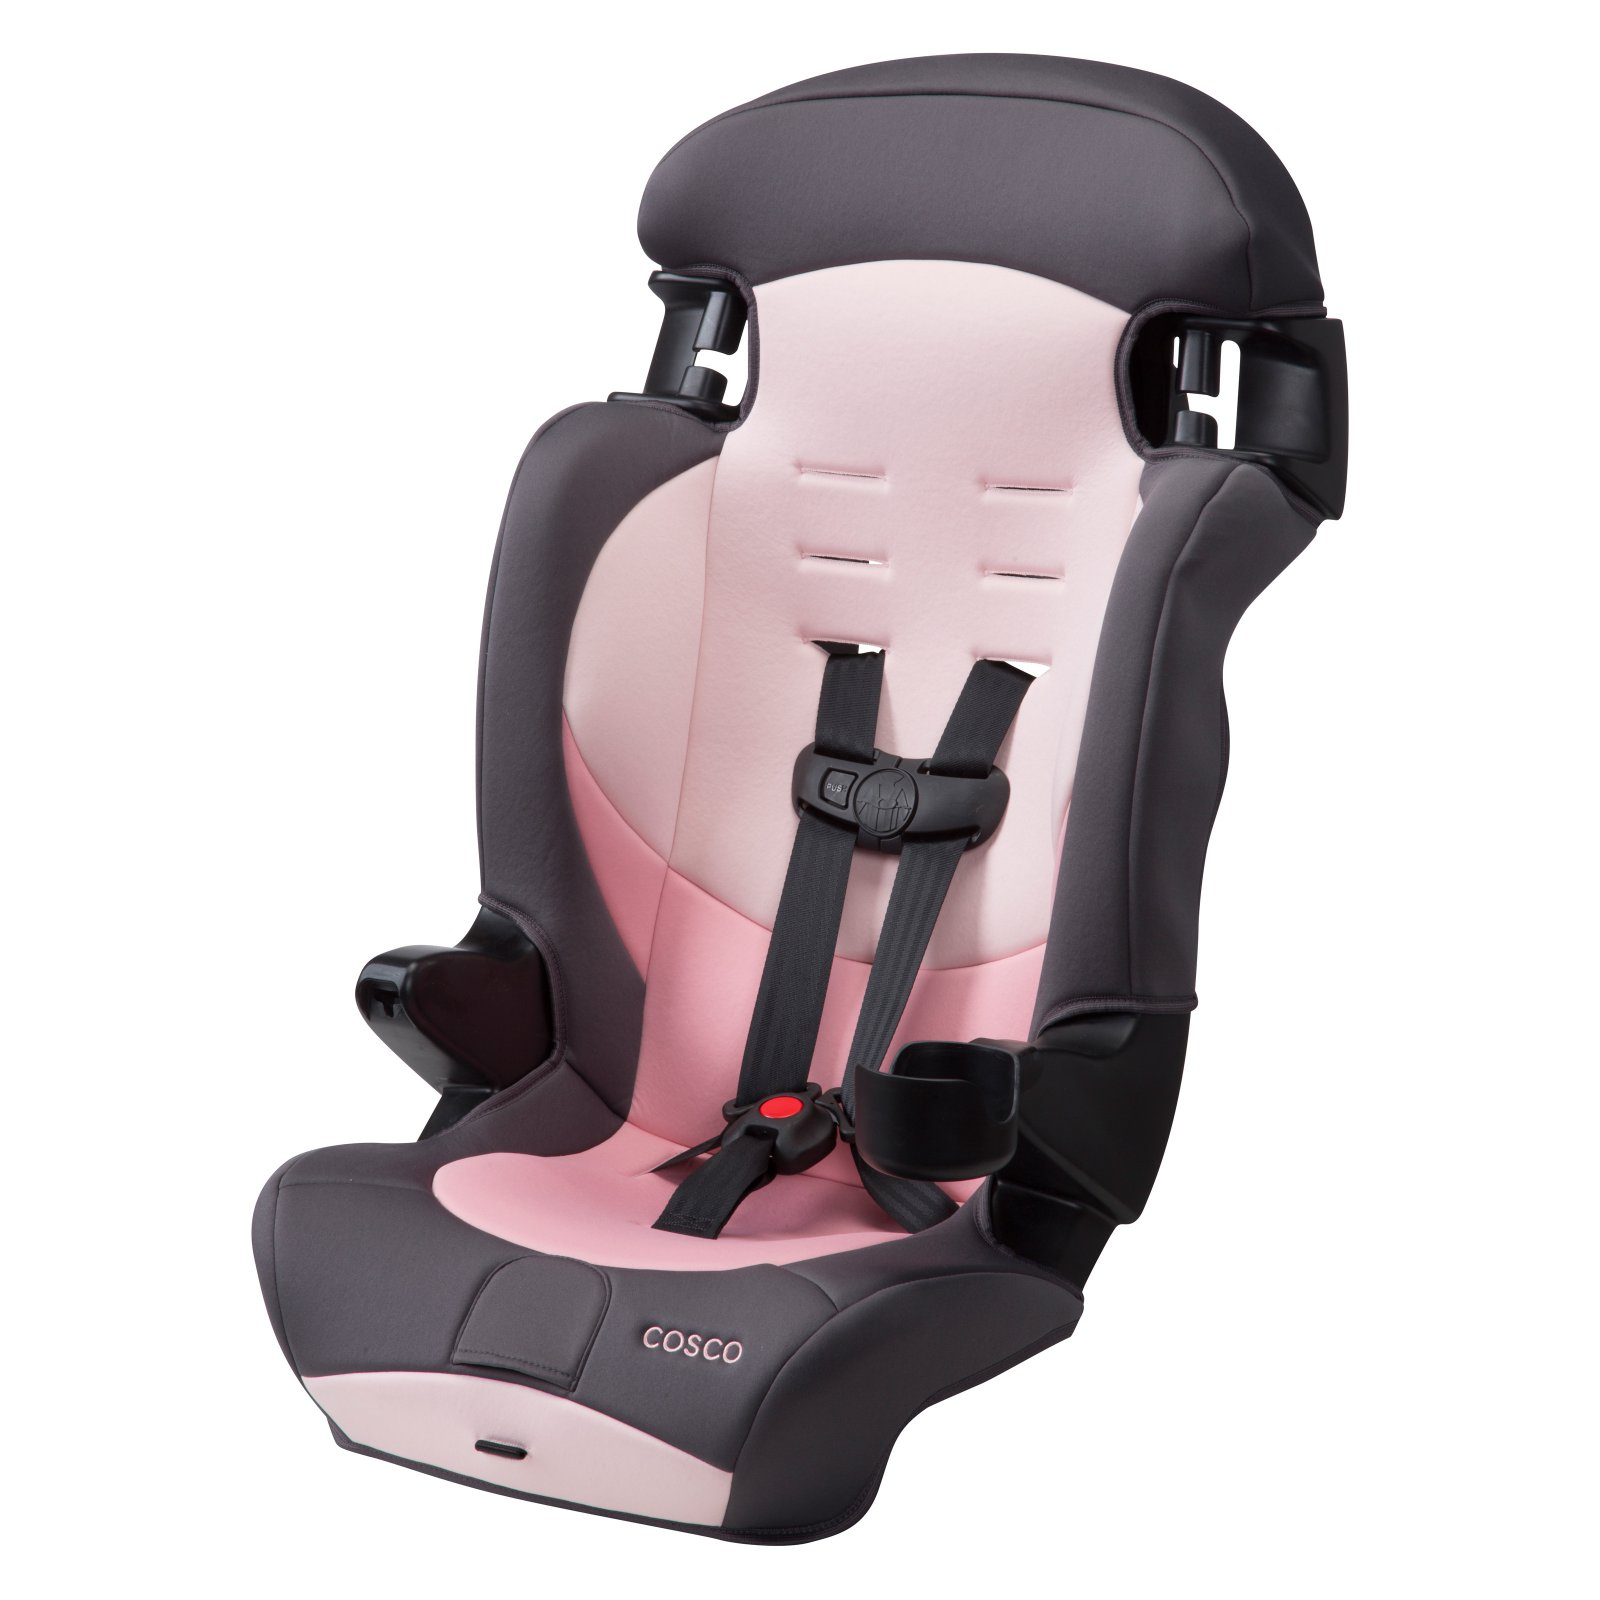 Cosco Finale DX 2-in-1 Booster Car Seat - Sweetberry